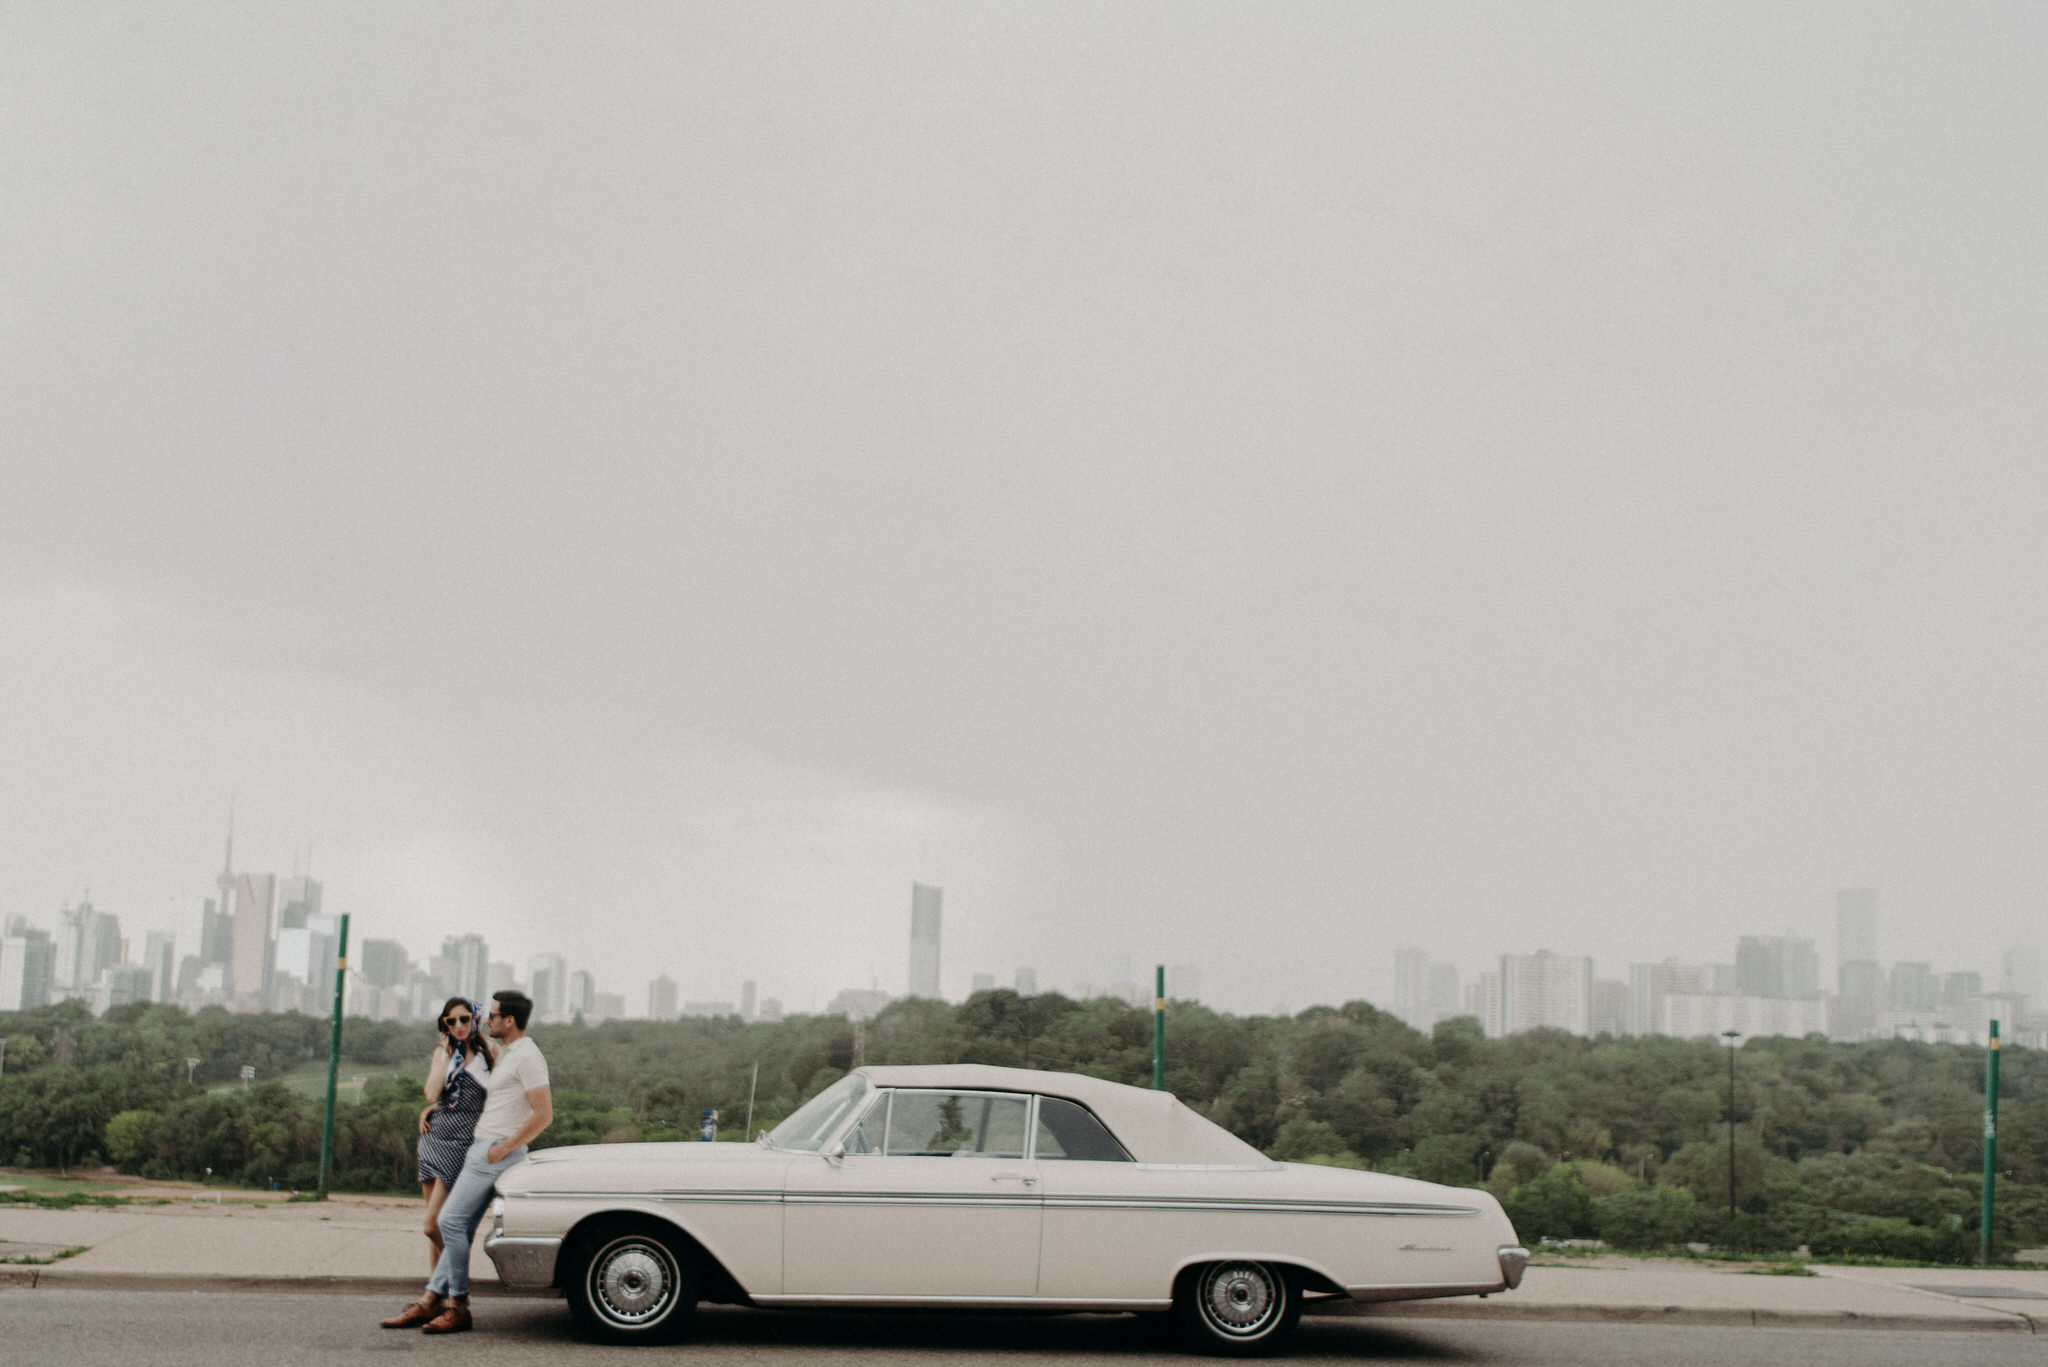 toronto engagement photography scarlet oneill 02.JPG